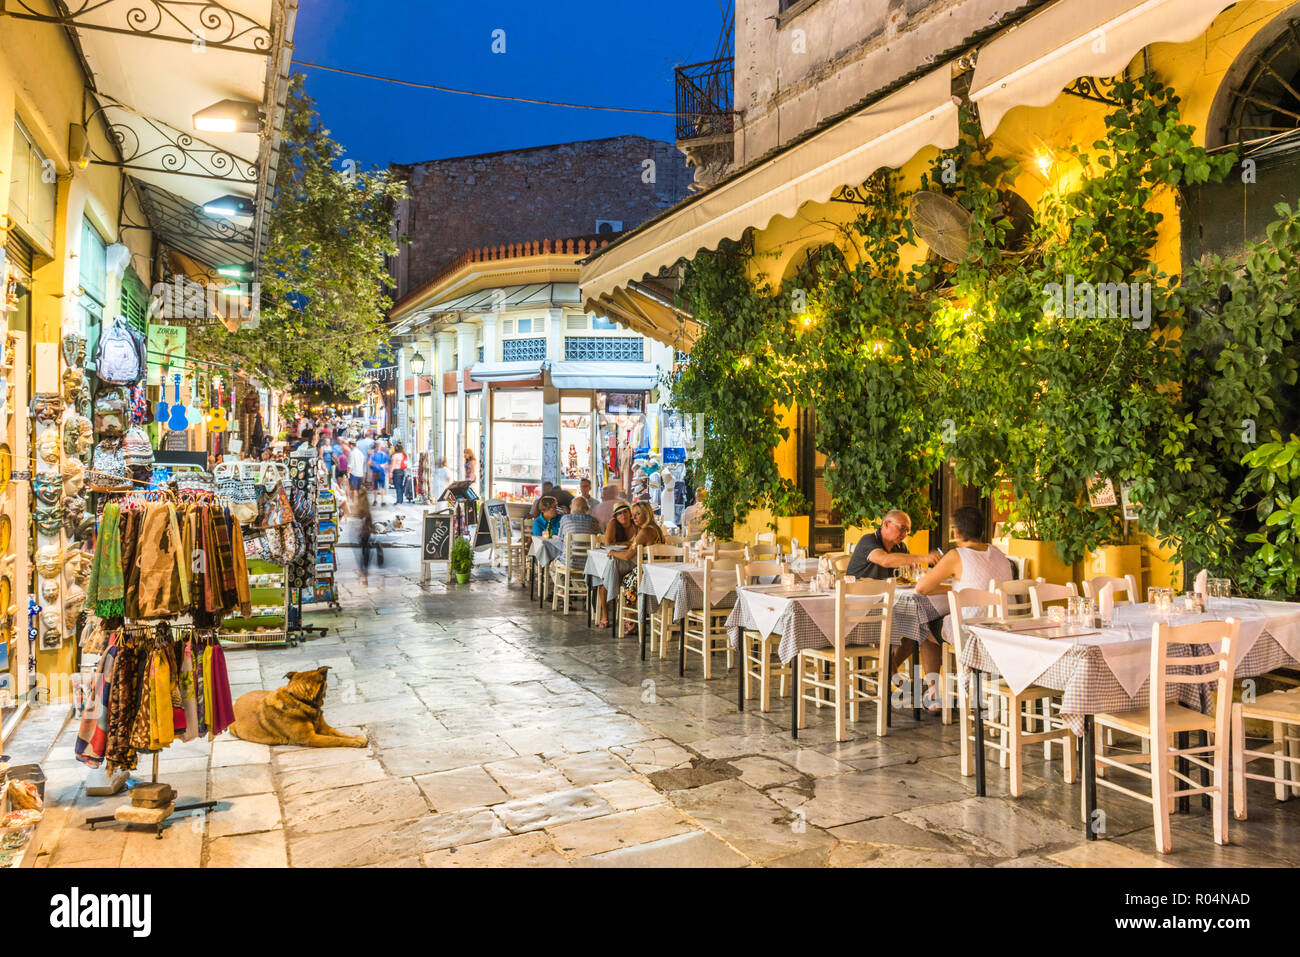 Restaurants at night, Plaka District, Athens, Attica Region, Greece, Europe - Stock Image